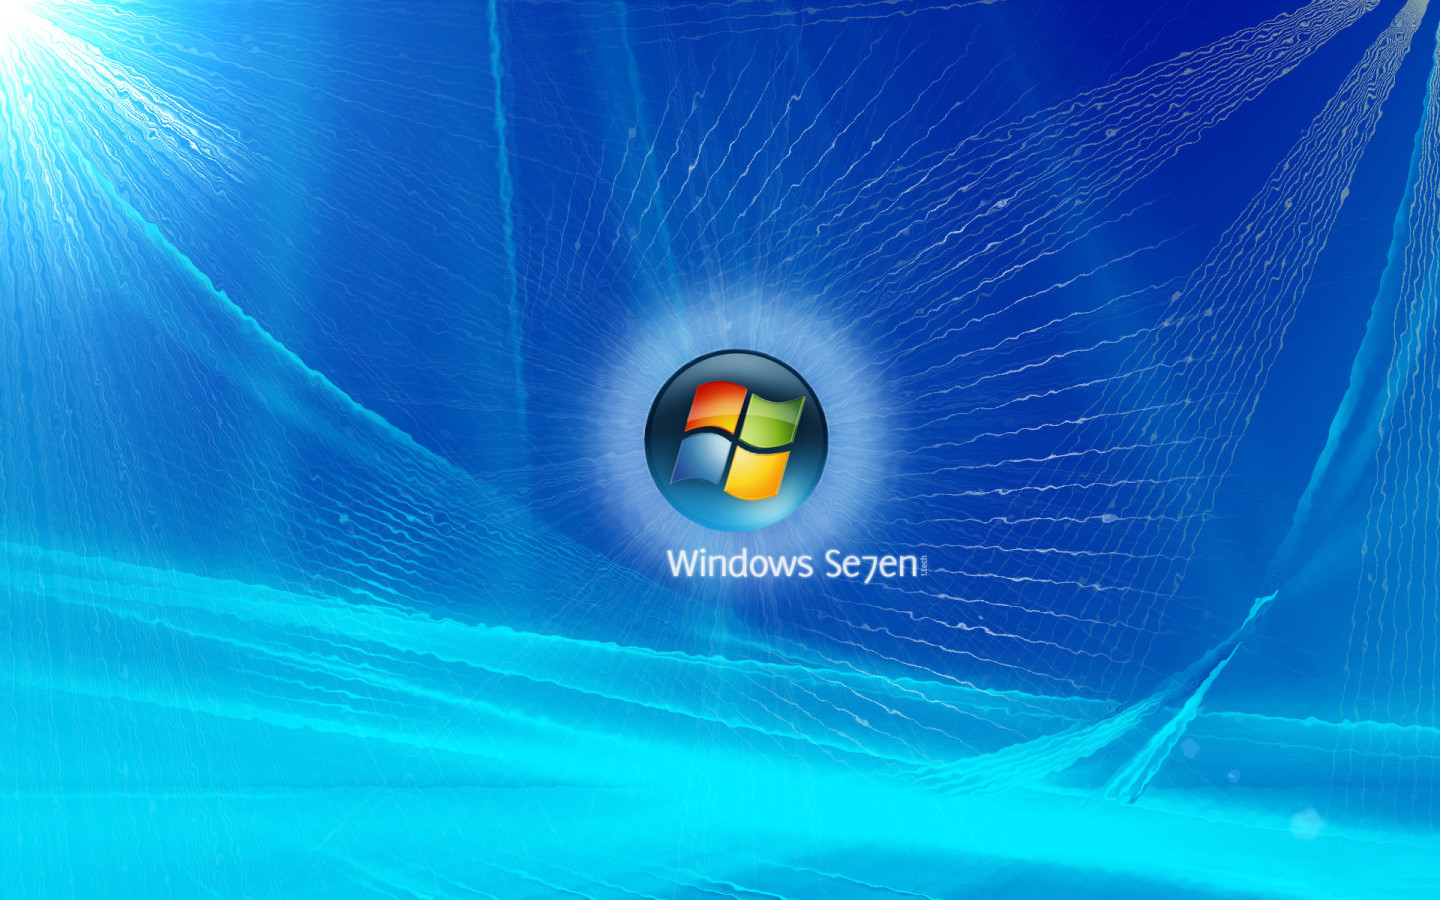 Fondos De Escritorio, Windows 7 Full HD